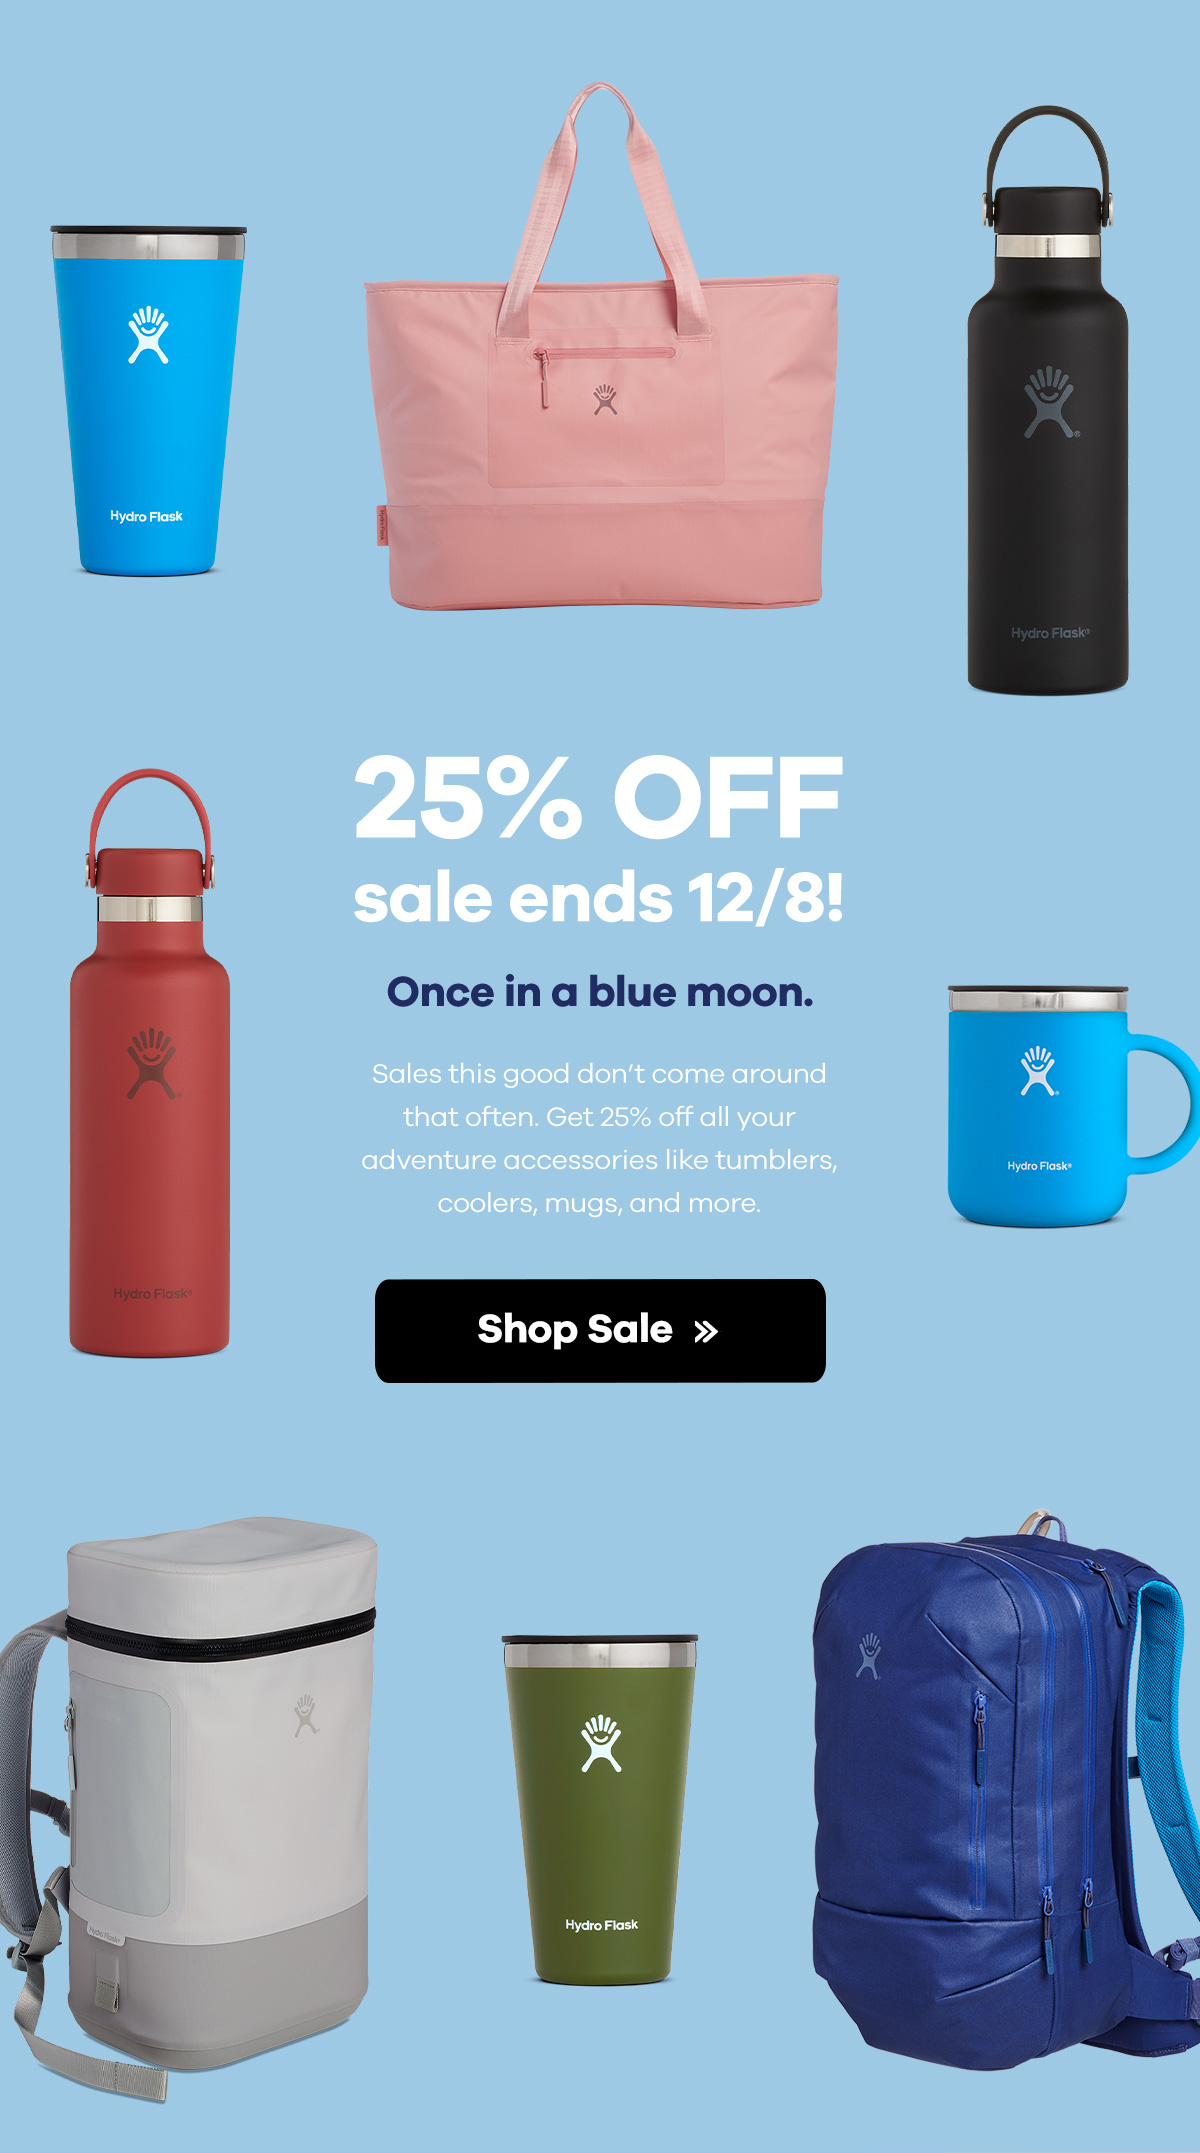 25% off sale ends 12/8! Once in a blue moon. Sales this good don't come around that often. Get 25% off all your adventure accessories like tumblers, coolers, mugs, and more. | SHOP SALE >>